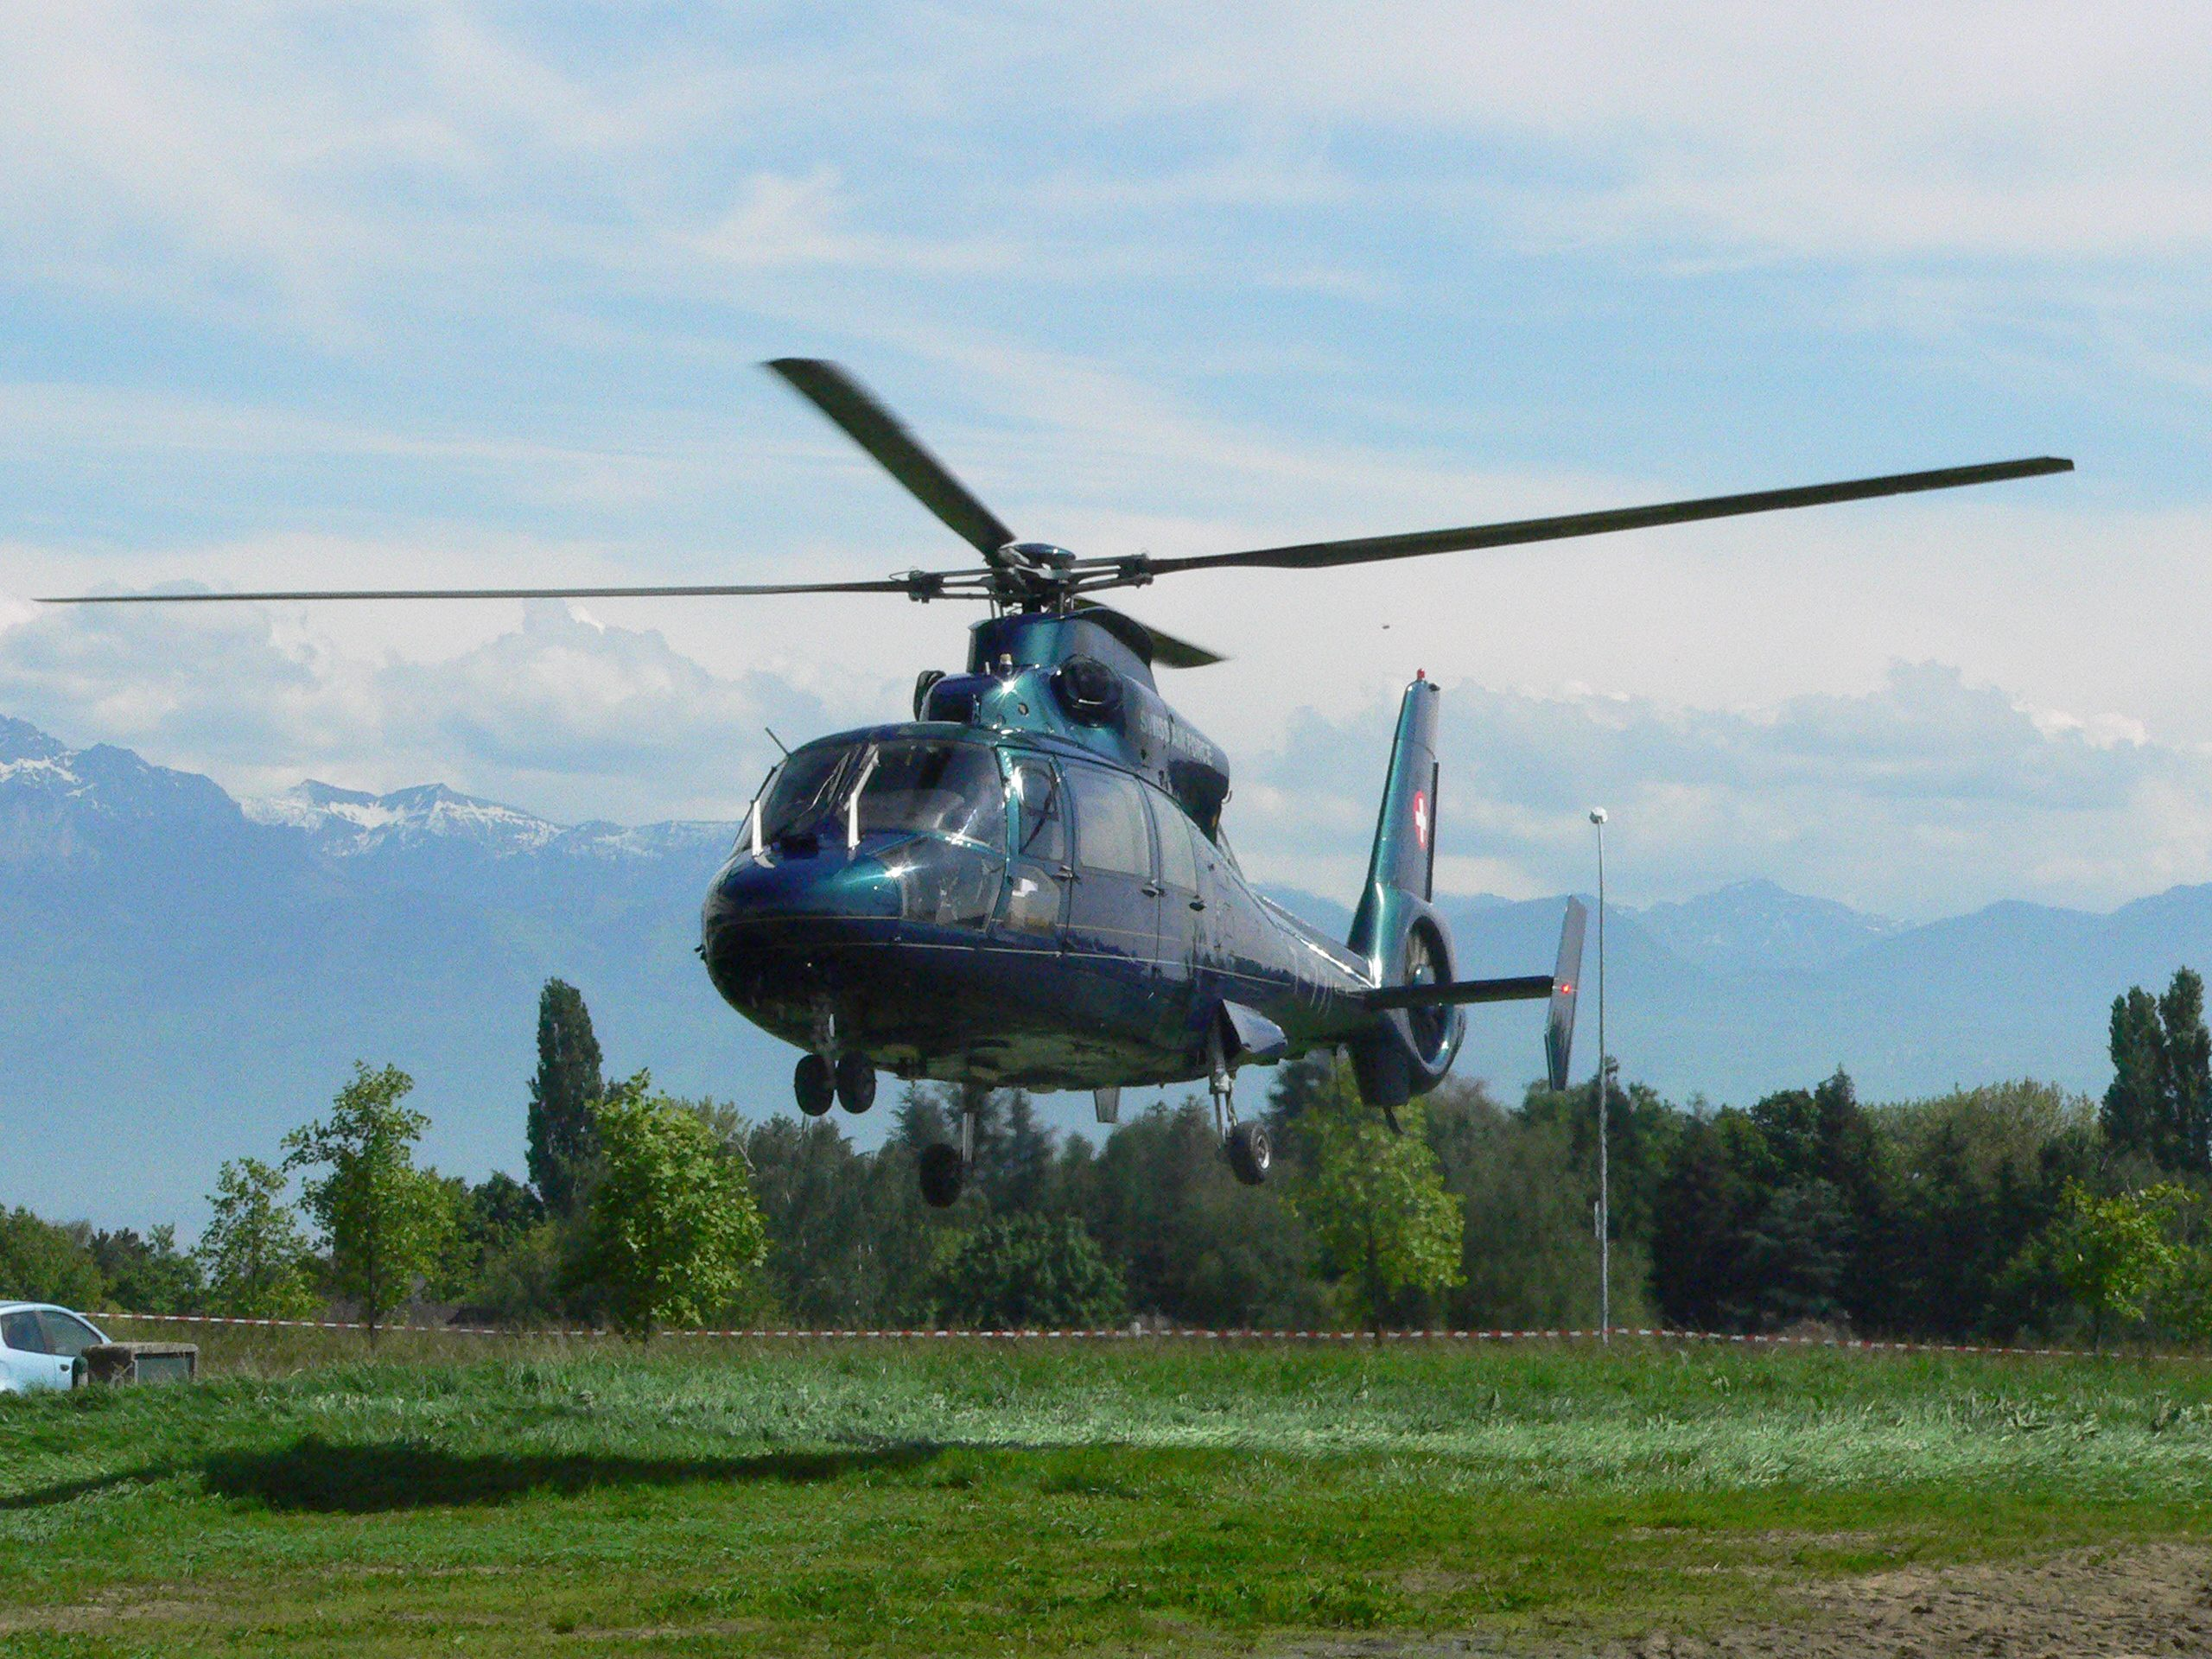 how work helicopter with File Swiss Dauphin Helicopter 4 on File G UHIH   72 21509 129 Bell UH 1H Iroquois  205   cn 13208  US Army   9436432746 besides 478155685409346616 also File boscastle raf seaking in addition 8022105560125575 further Fantasy 575.